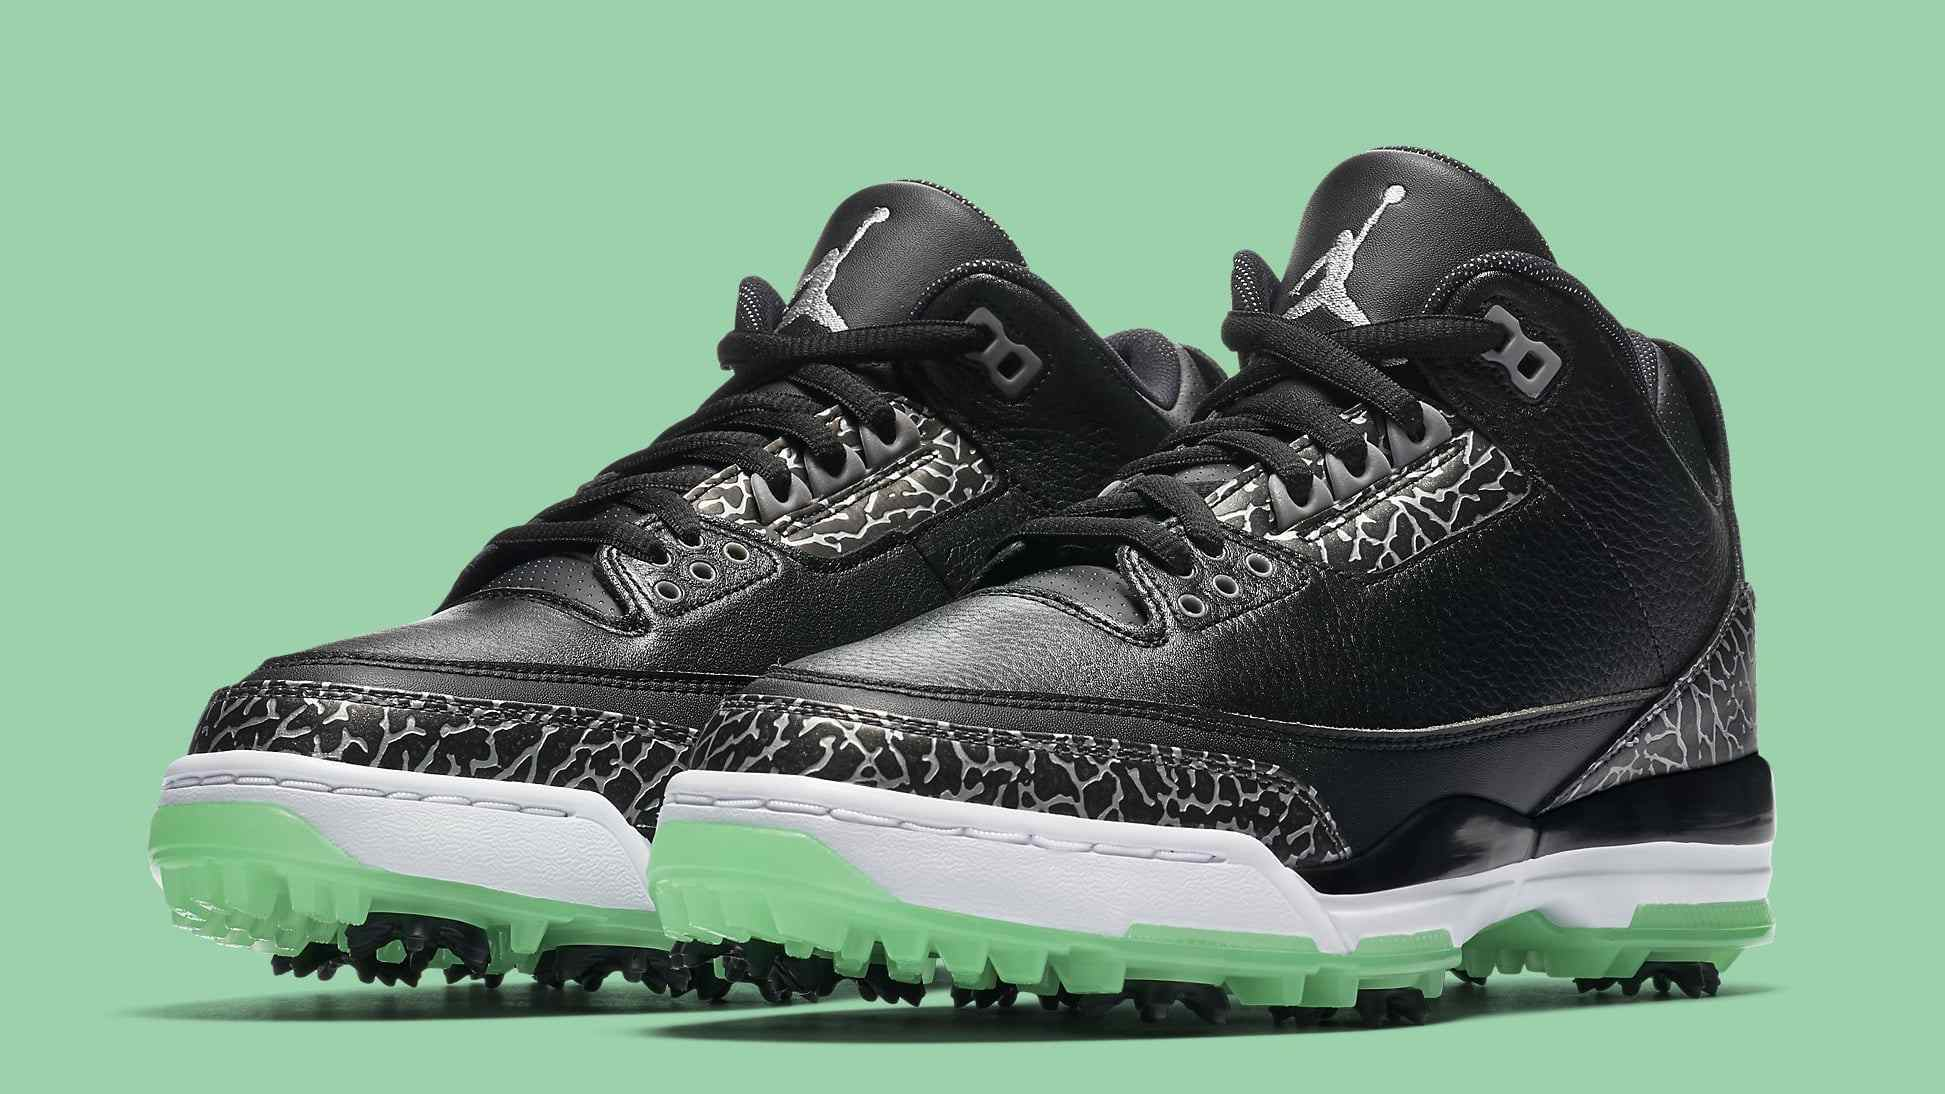 2e9a76b0b86a New Golf Shoes  The Latest Footwear for the Links